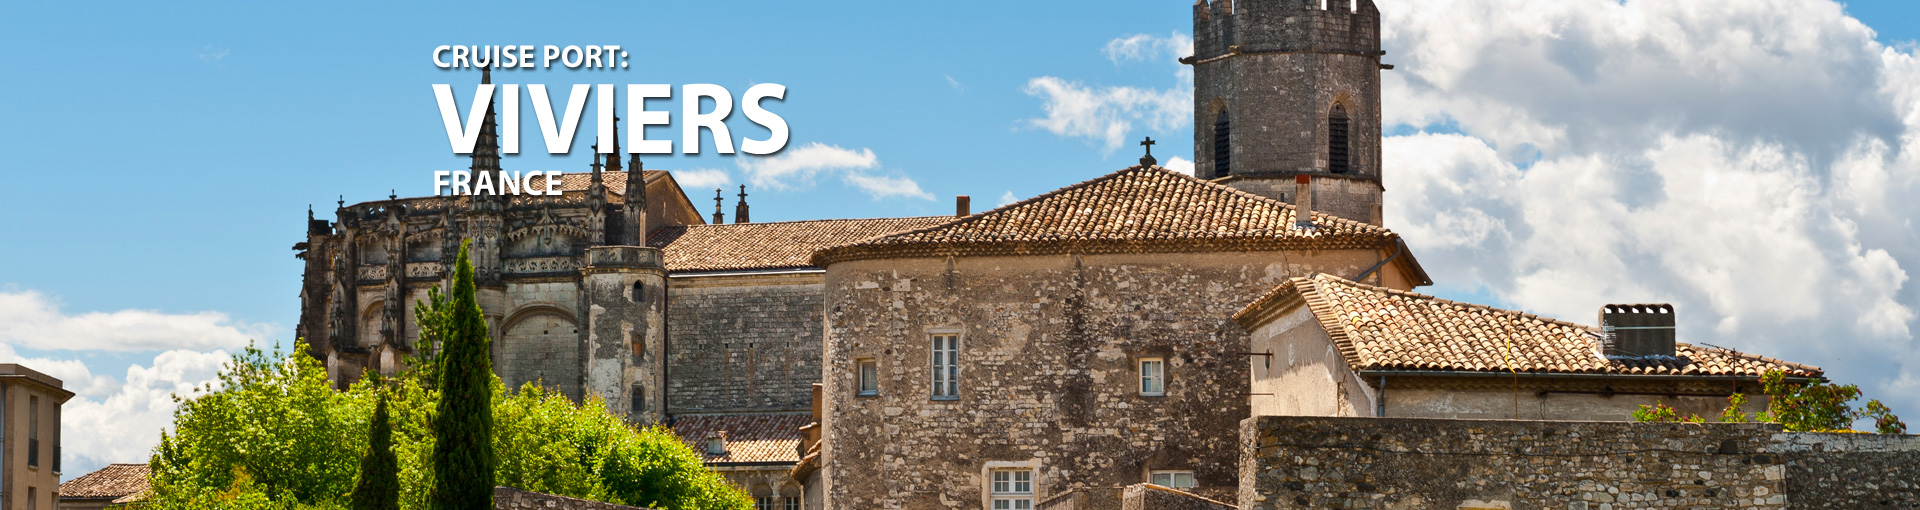 Cruises to Viviers, France